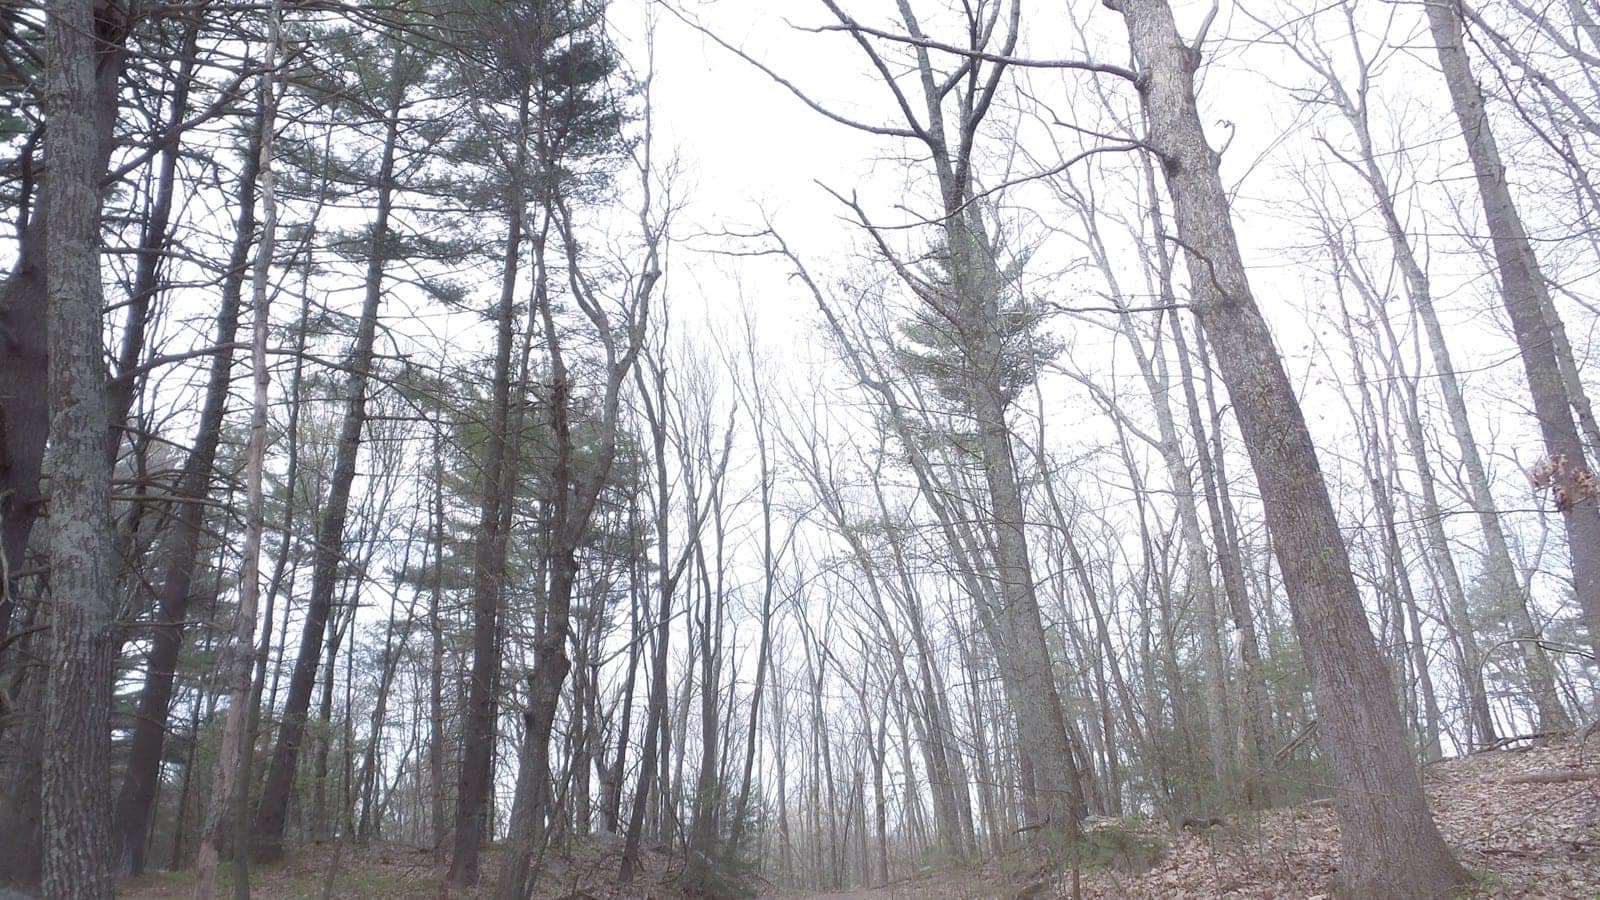 Into the Ominous Woods